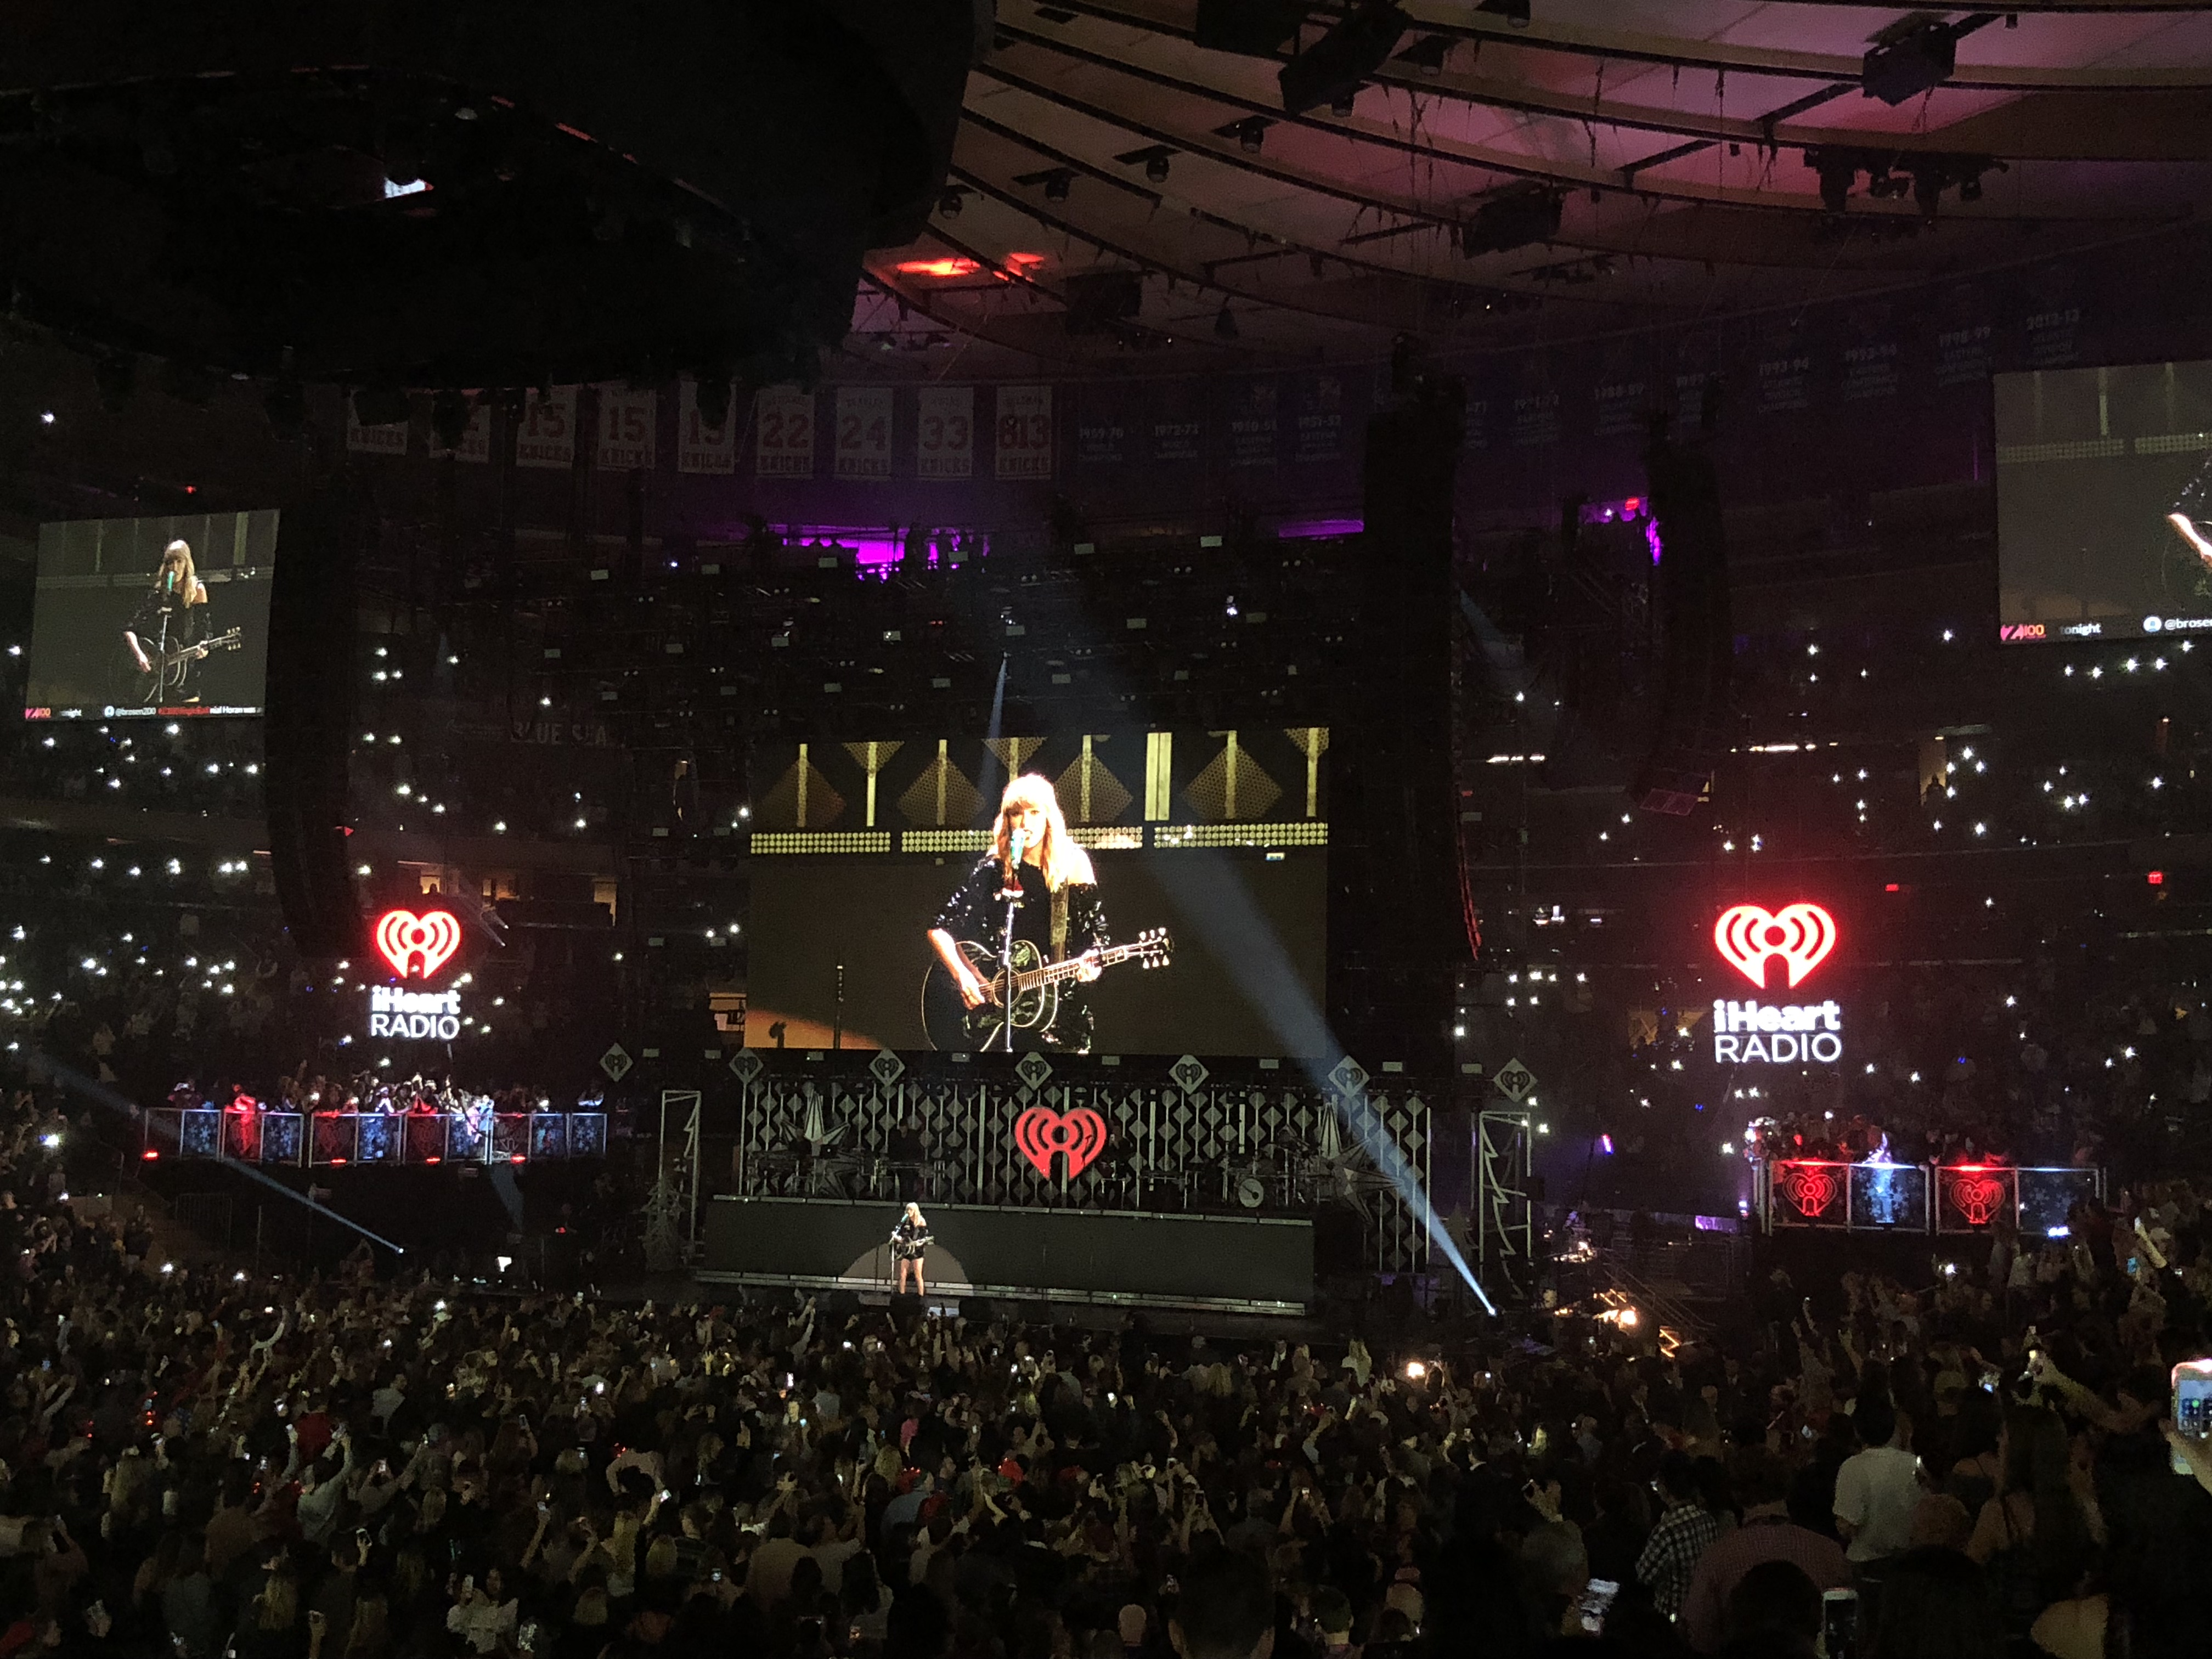 Z100 jingle ball at madison square garden friday december 8th 2017 reviewed rock nyc get for Jingle ball madison square garden